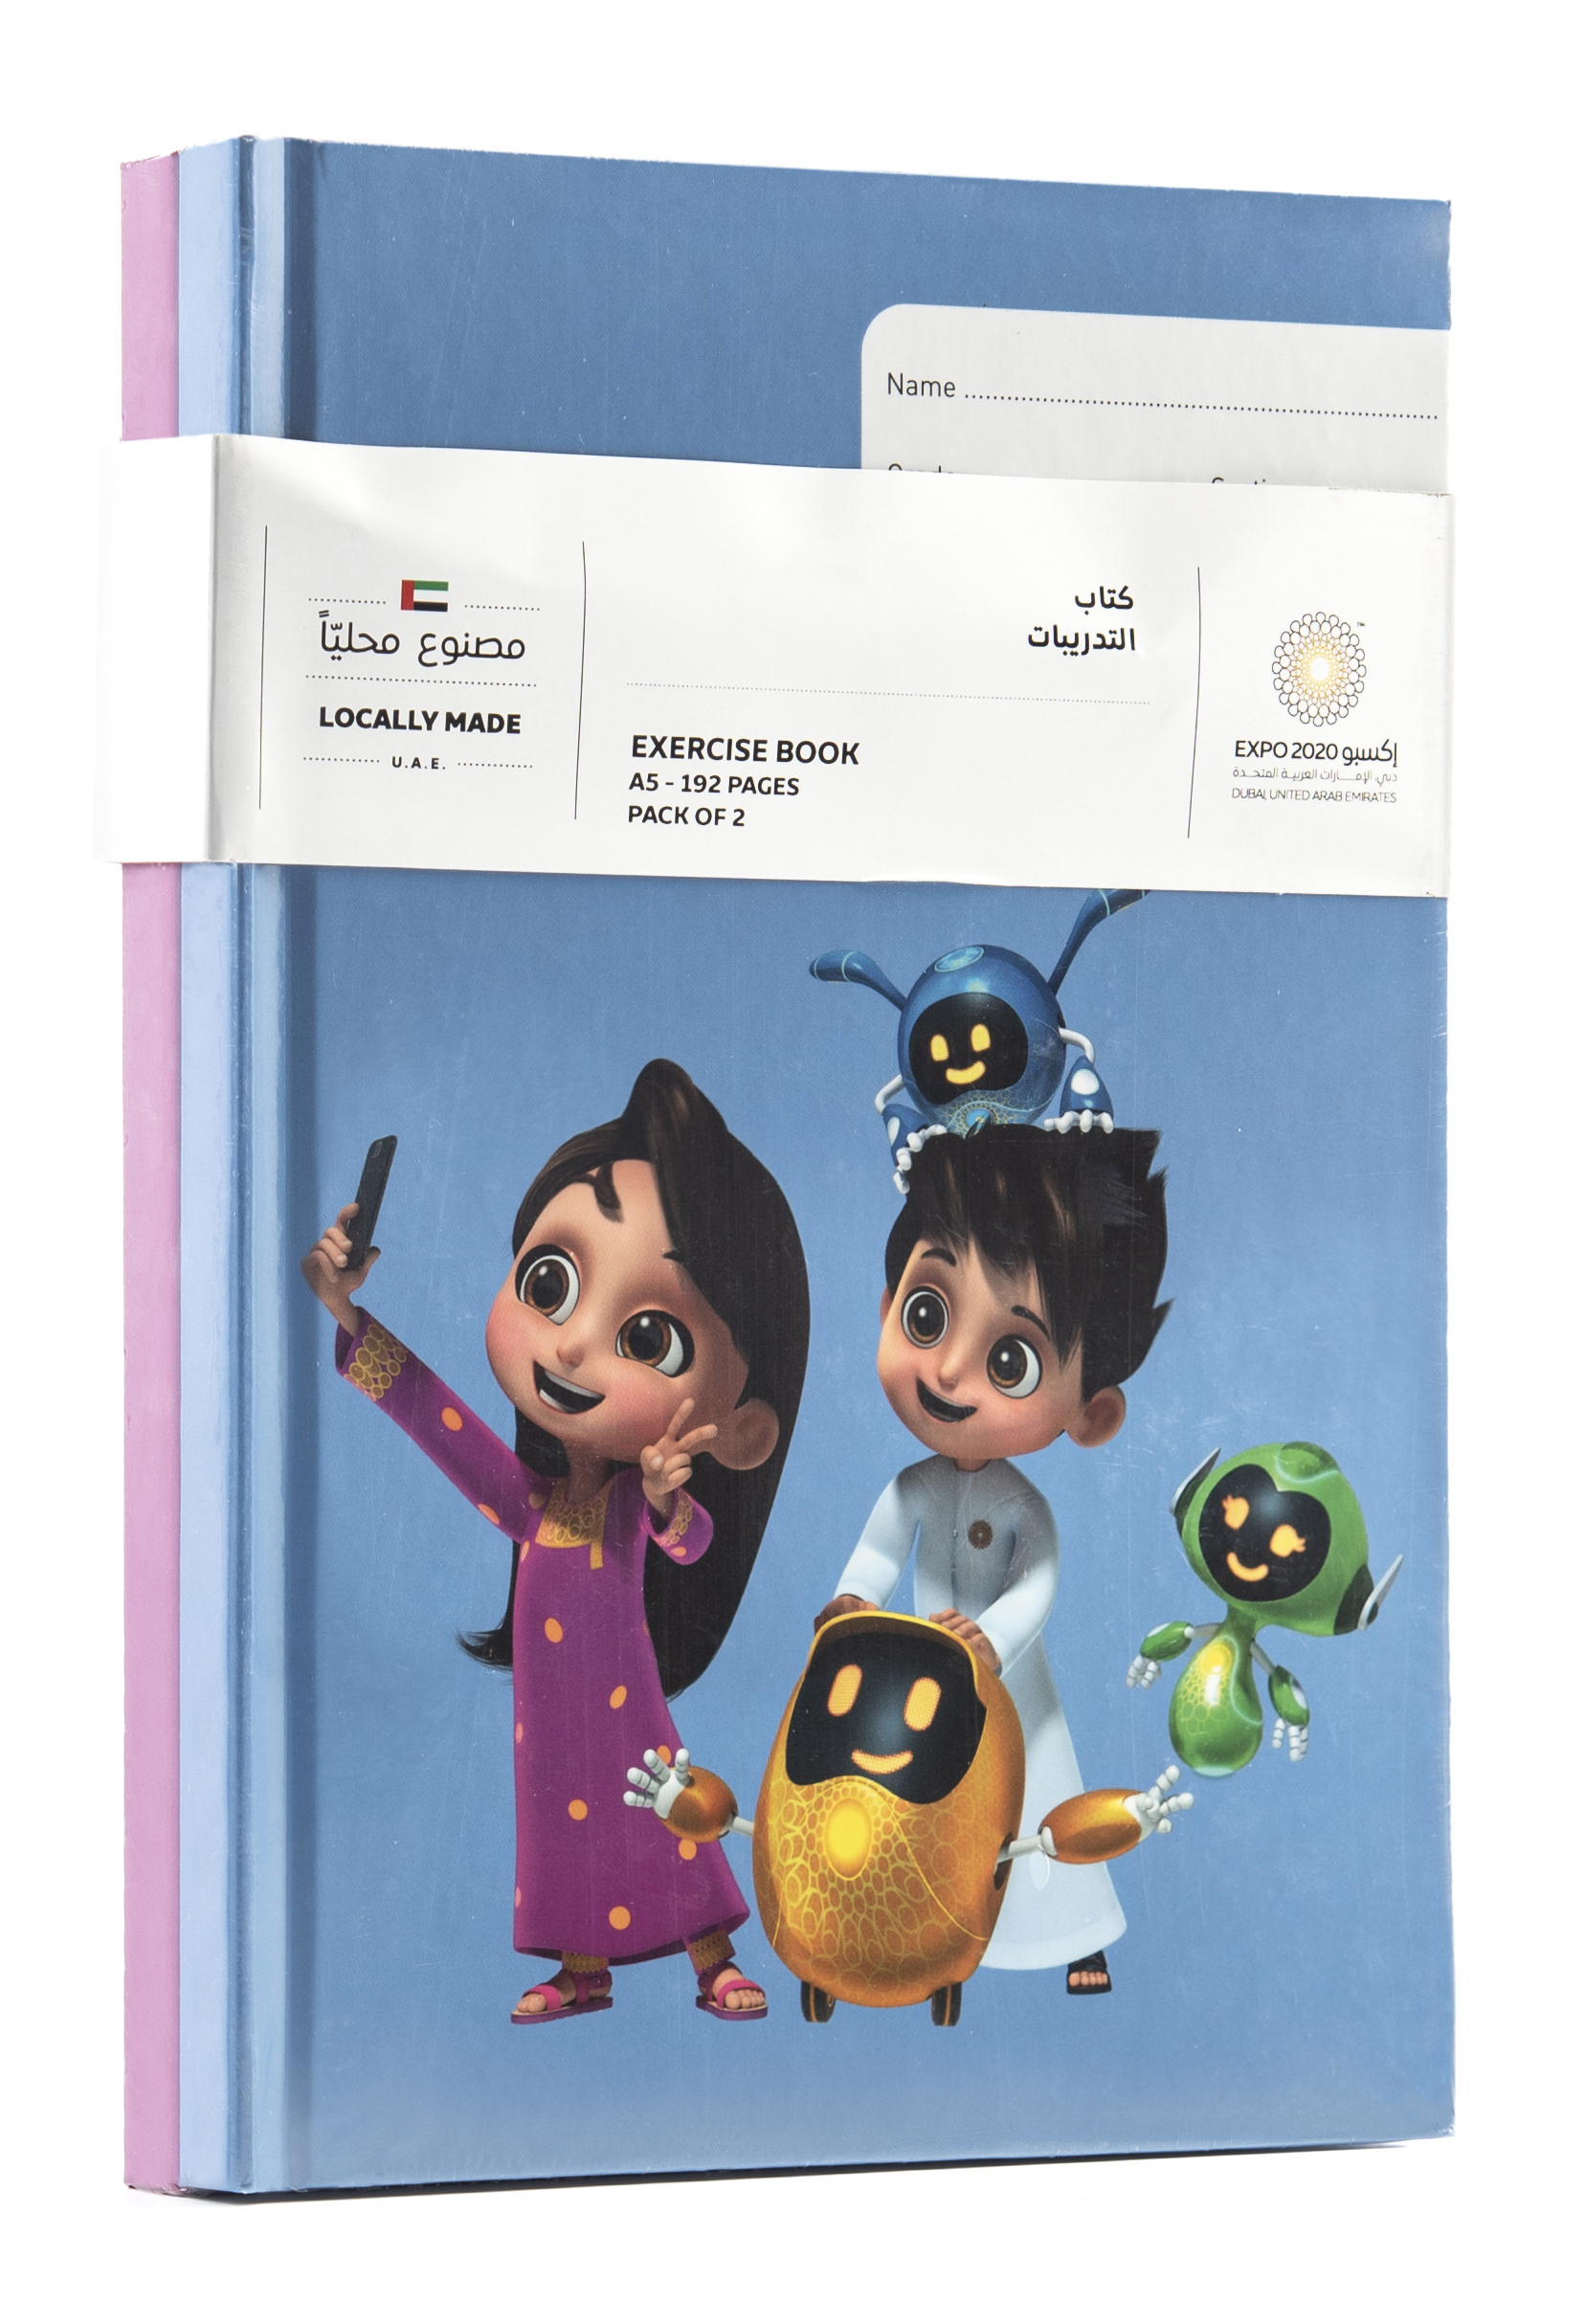 Expo 2020 Dubai Mascots A5 Hardcase Exercise Books Pack of 2 - 192 Pages - Latifa